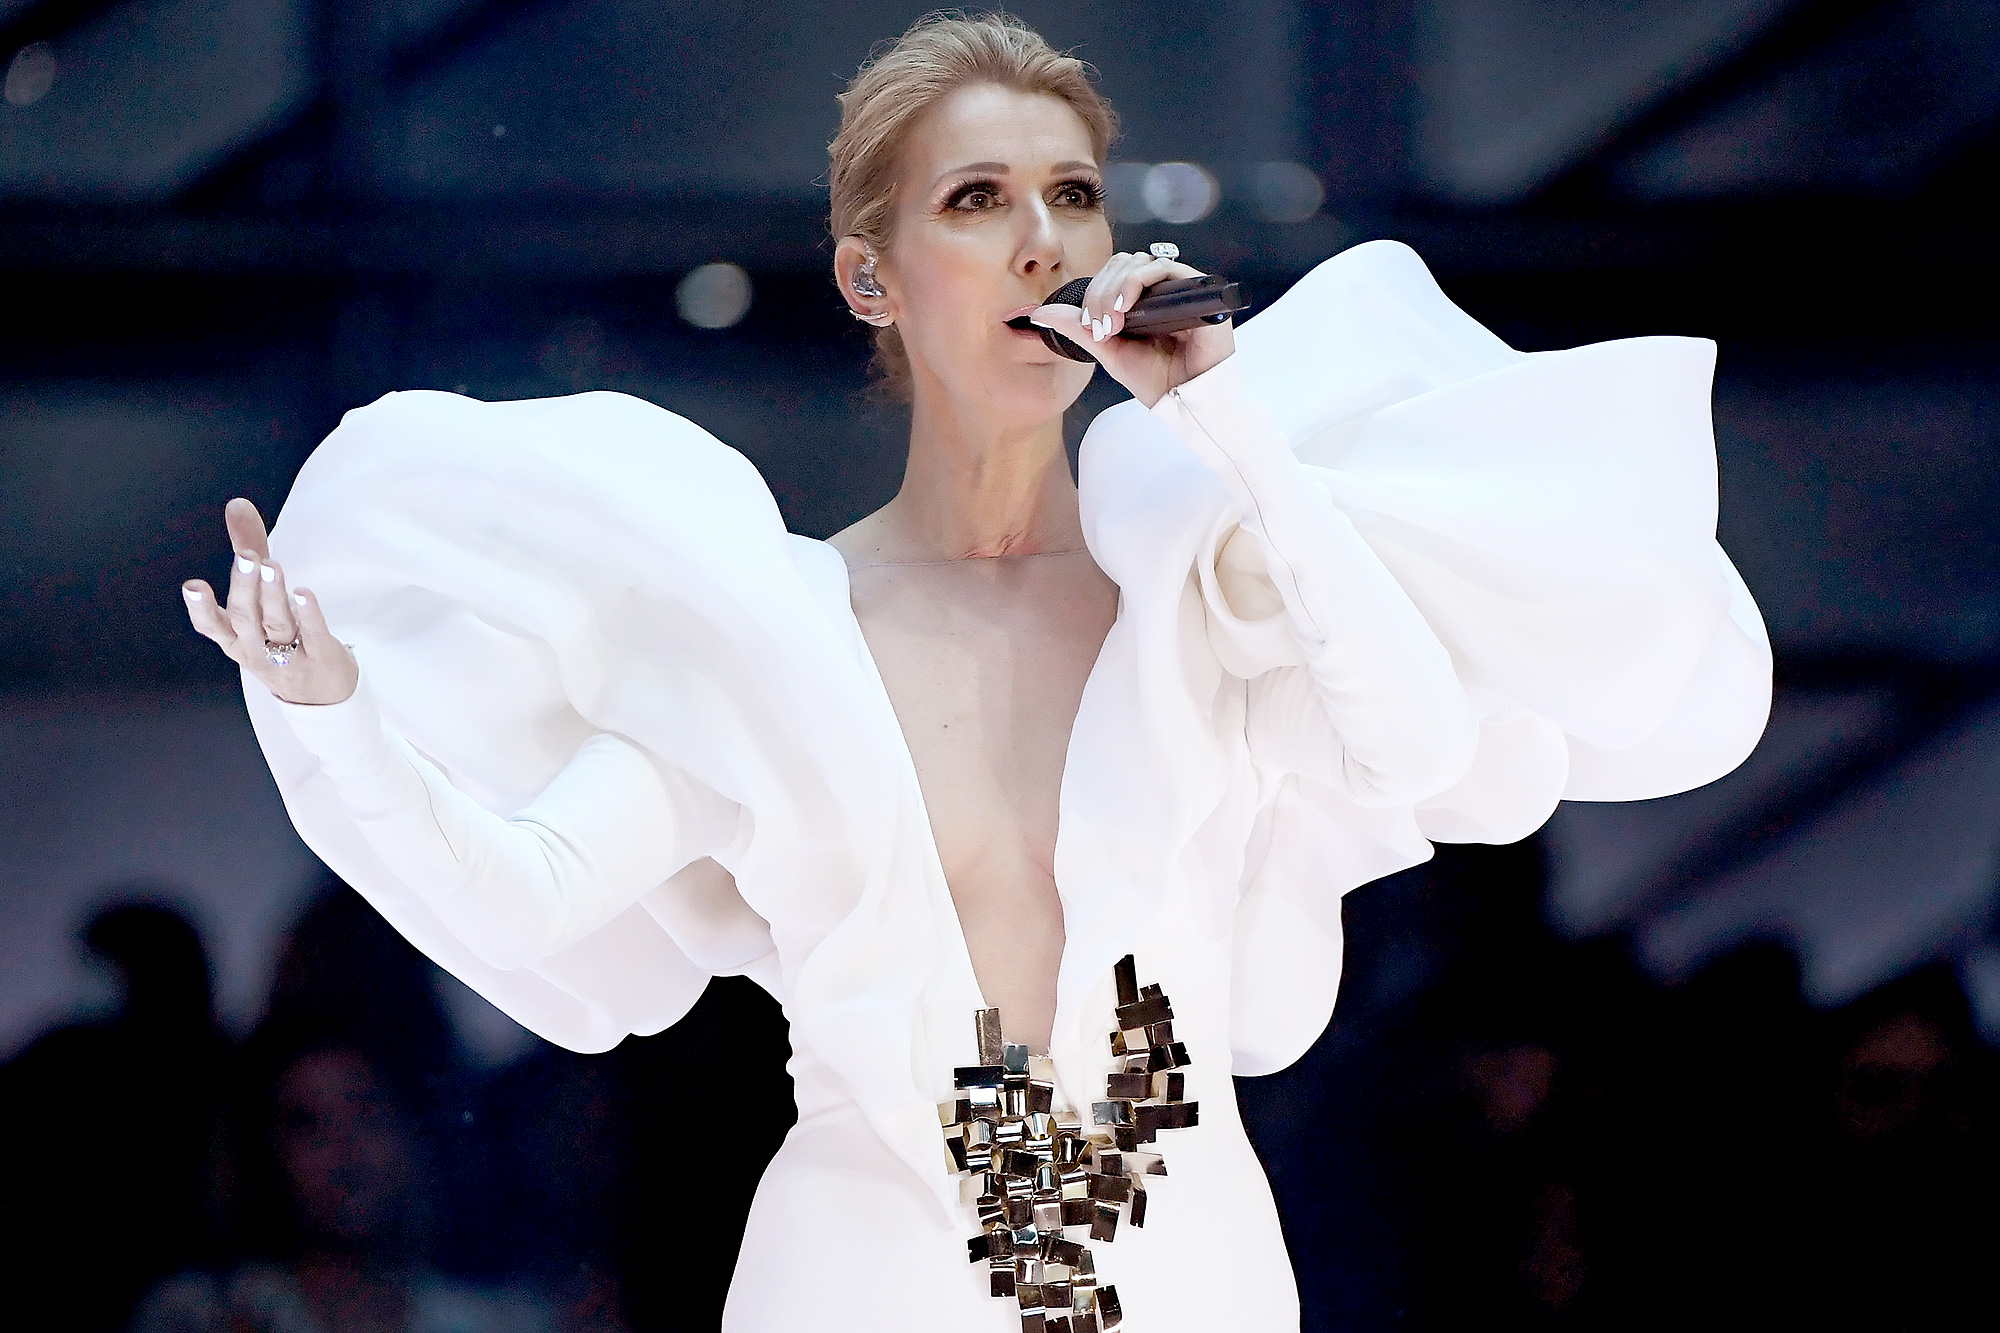 Céline Dion Celebrates 20th Anniversary of 'My Heart Will Go On' with Emotional Billboard Music Awards Performance